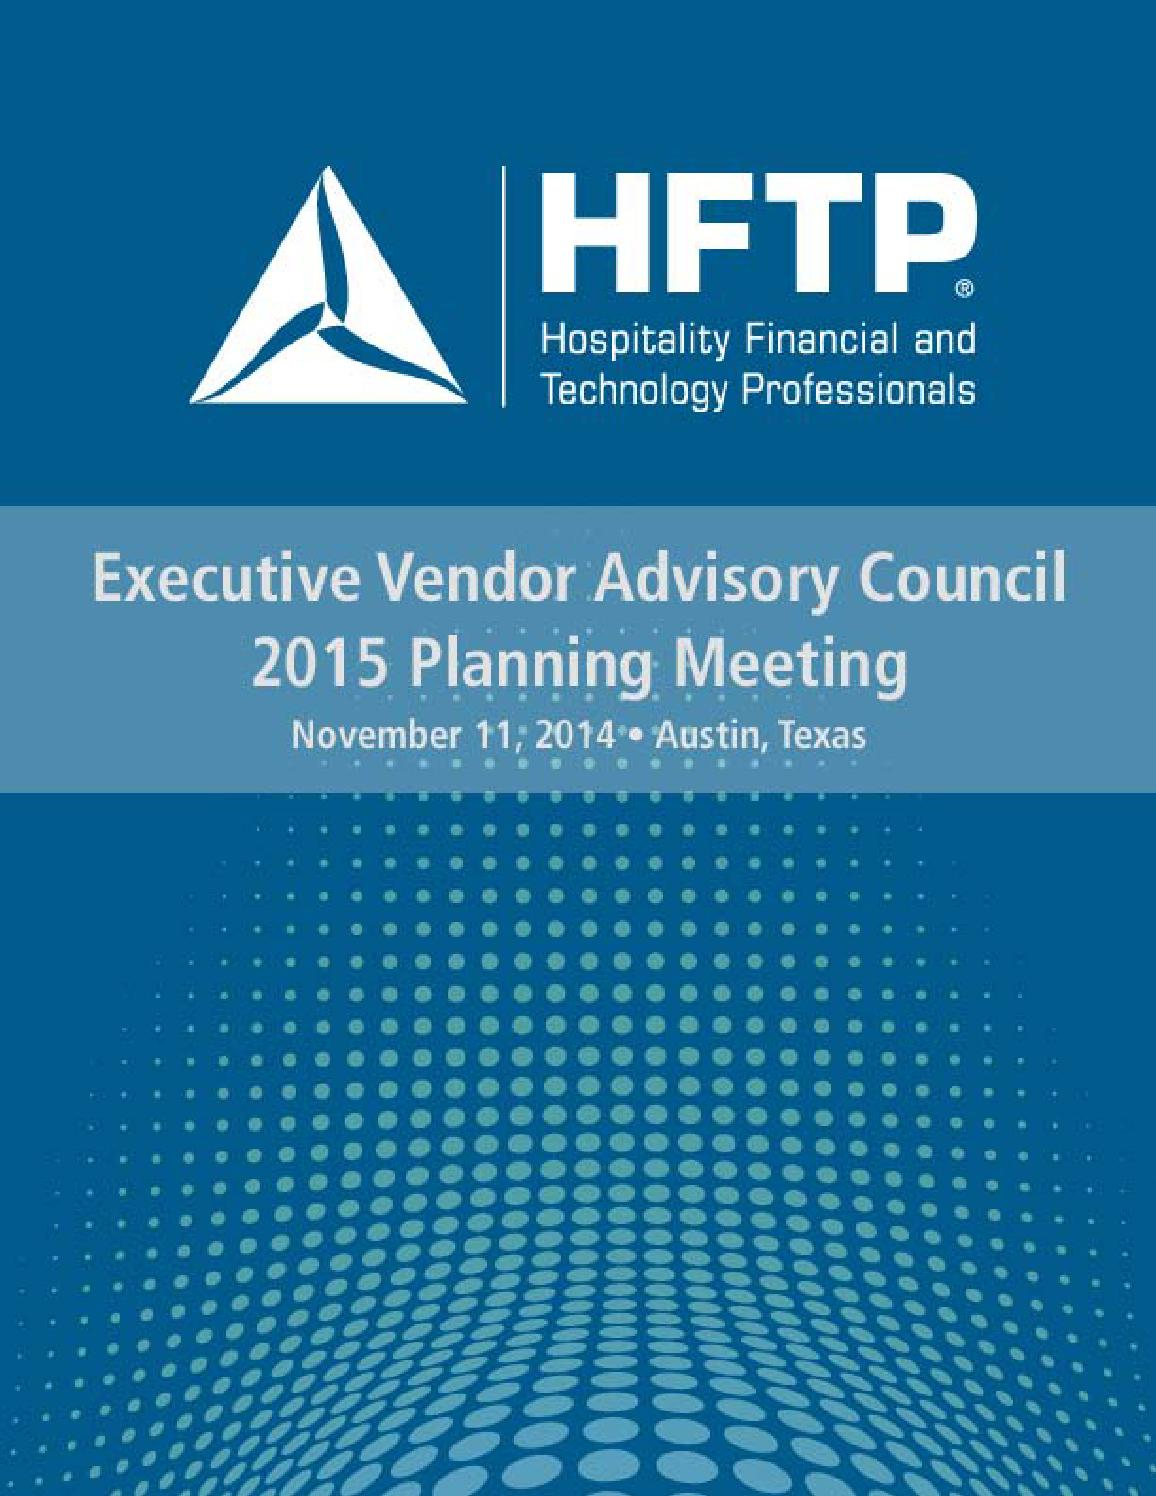 2015 HFTP Executive Vendor Advisory Council Meeting by HFTP - issuu